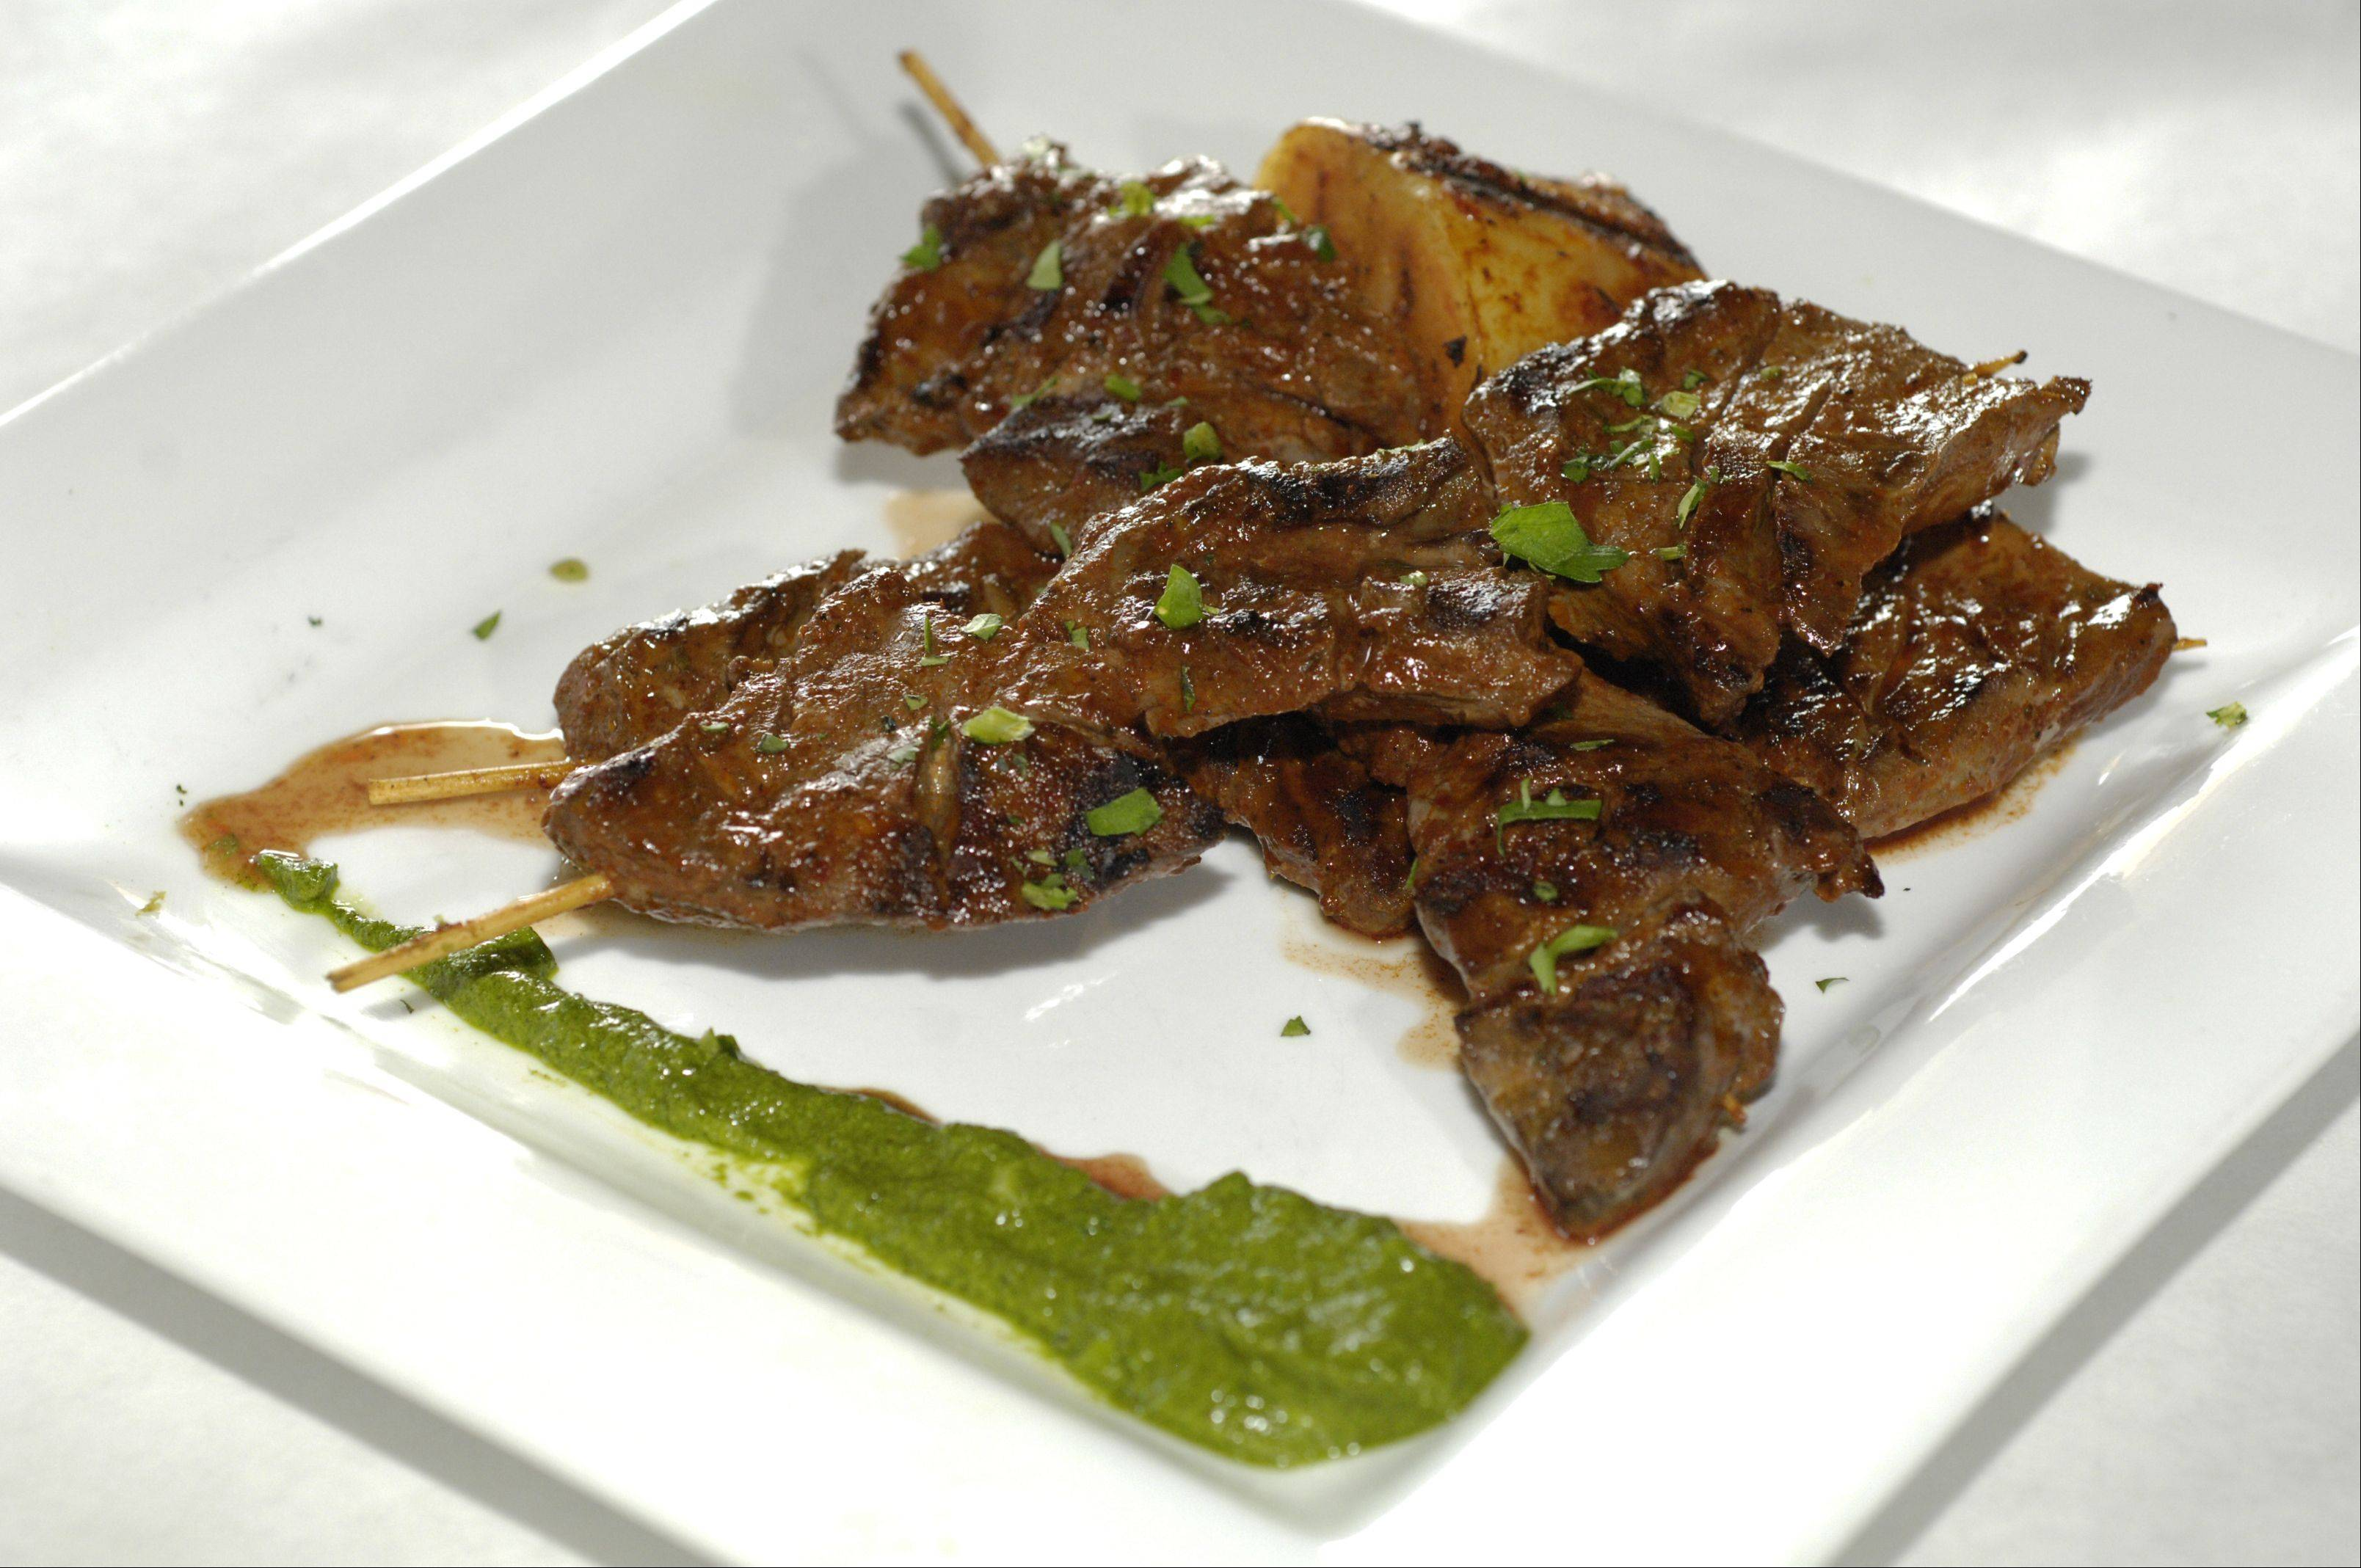 Anticuchos is a highlight on the menu at Rio's.